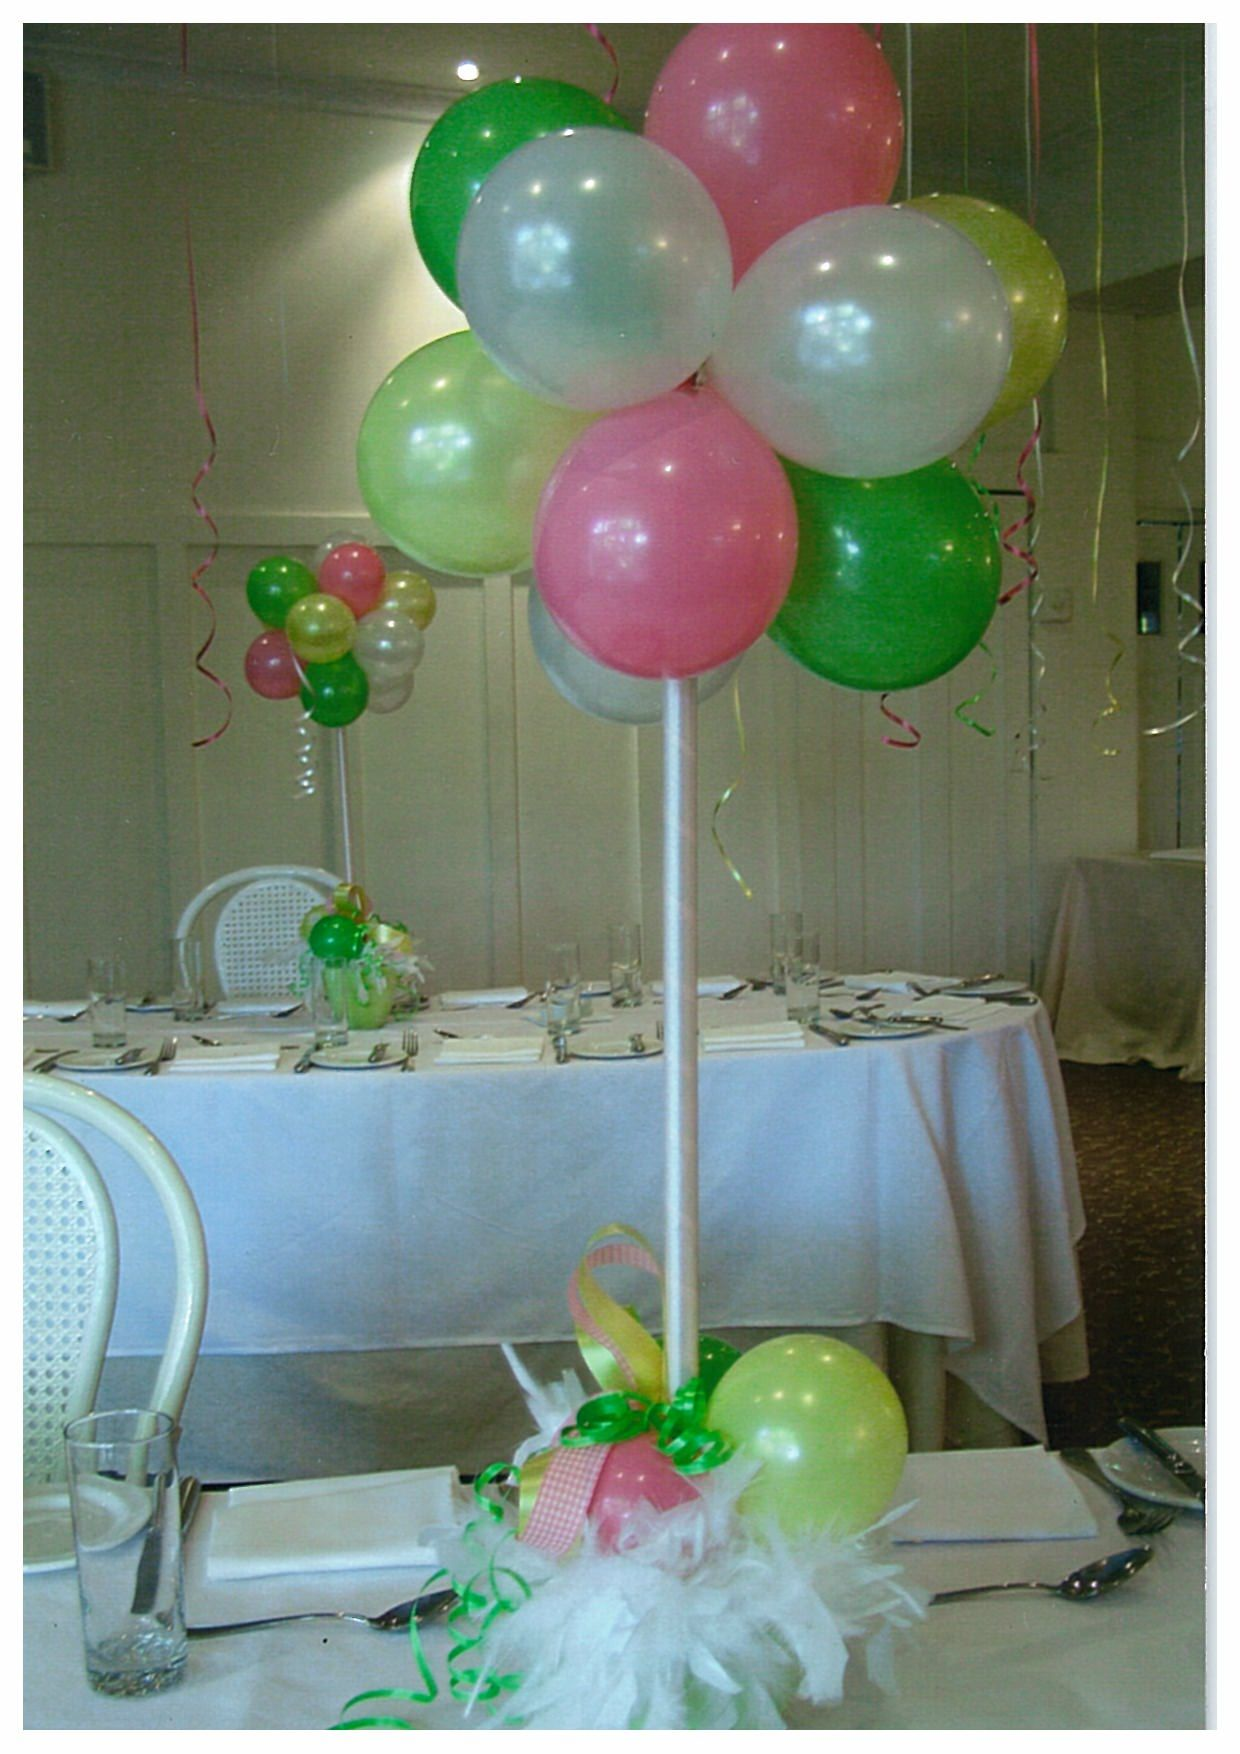 Balloon center pieces baby shower ideas pinterest for Baby shower decoration ideas with balloons